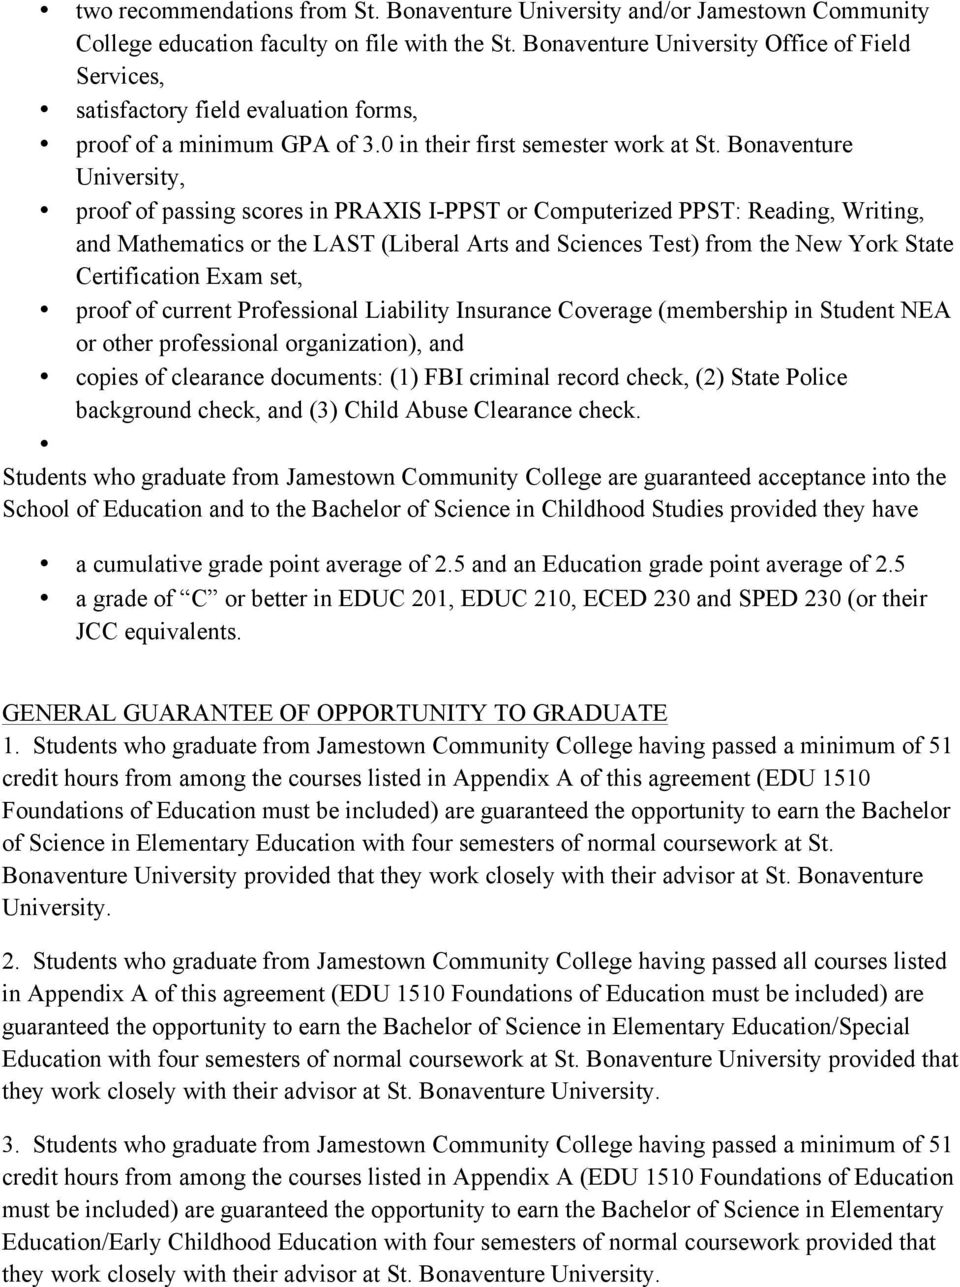 Bonaventure University, proof of passing scores in PRAXIS I-PPST or Computerized PPST: Reading, Writing, and Mathematics or the LAST (Liberal Arts and Sciences Test) from the New York State